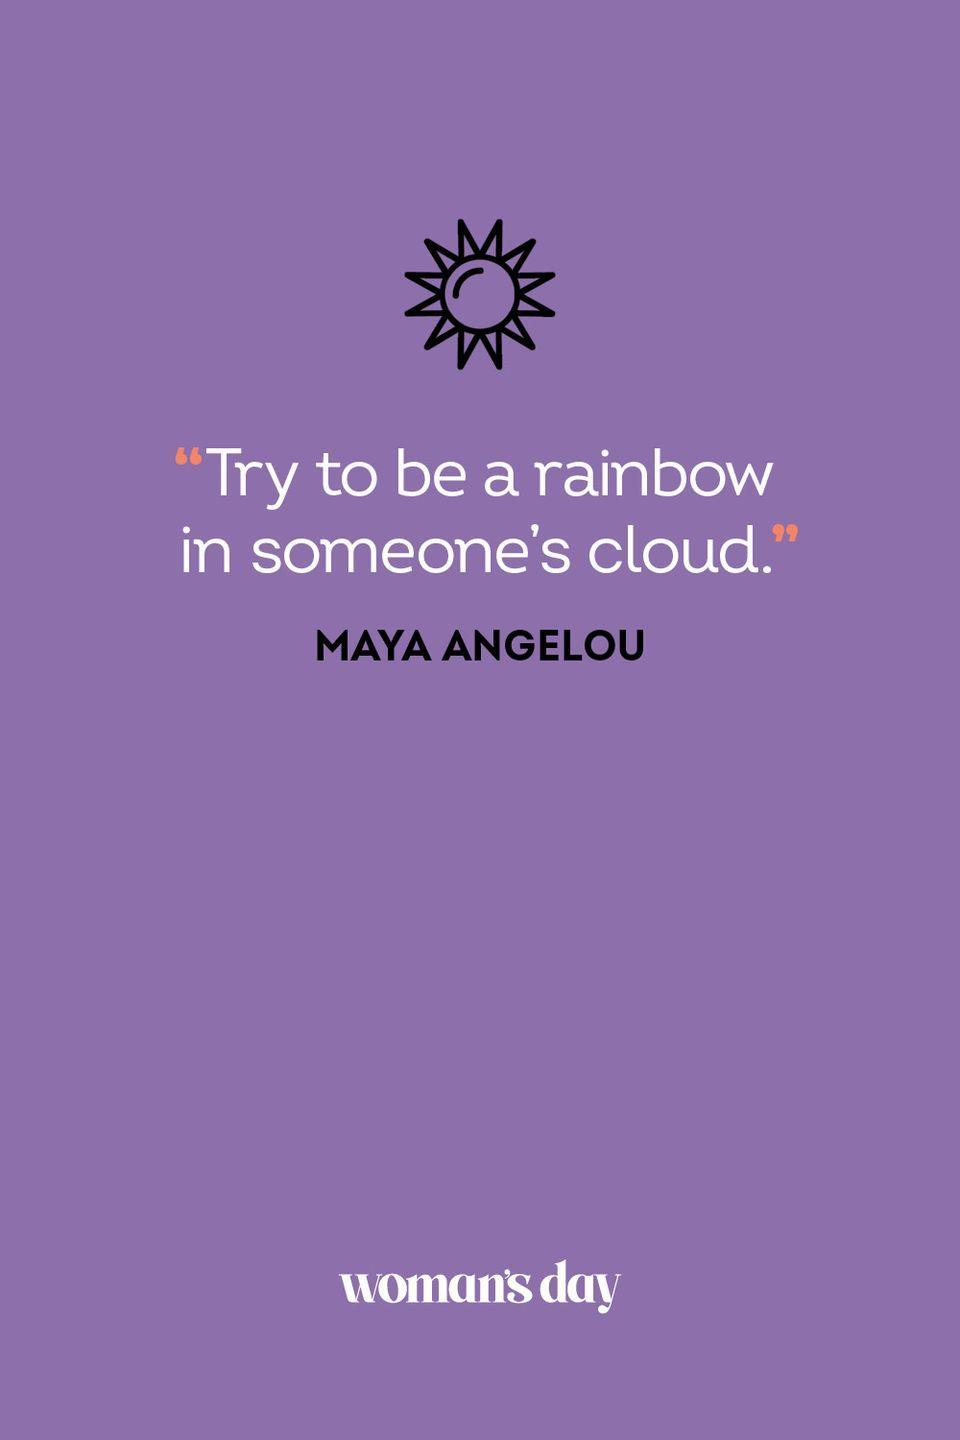 <p>Try to be a rainbow in someone's cloud.</p>